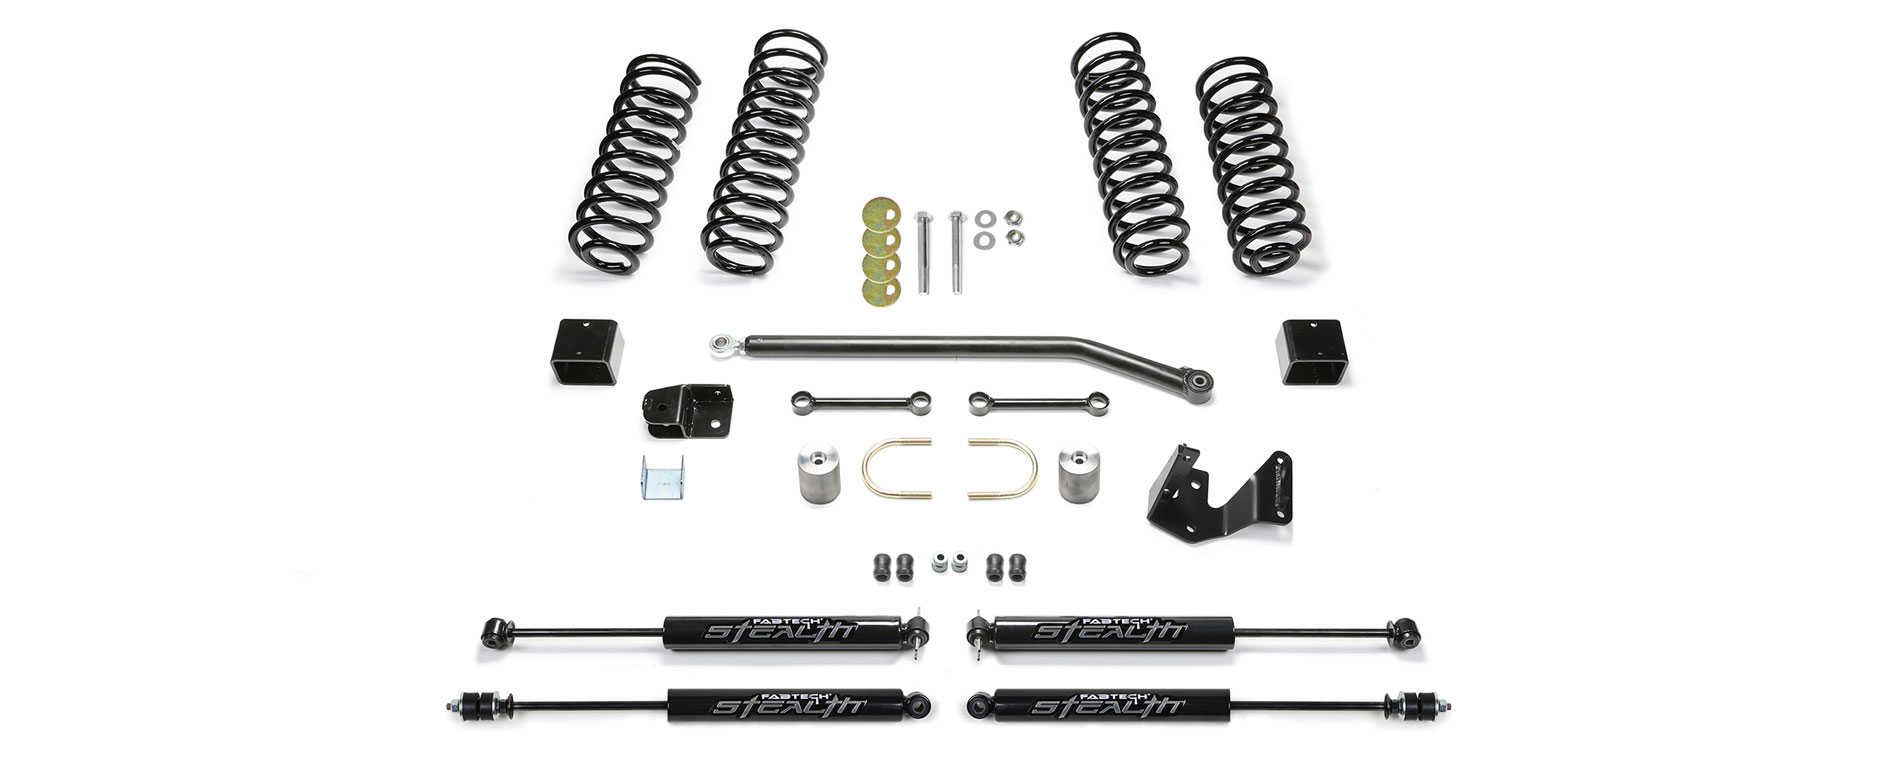 Fabtech 3in Sport II Lift Kits for 07-17 Jeep® Wrangler